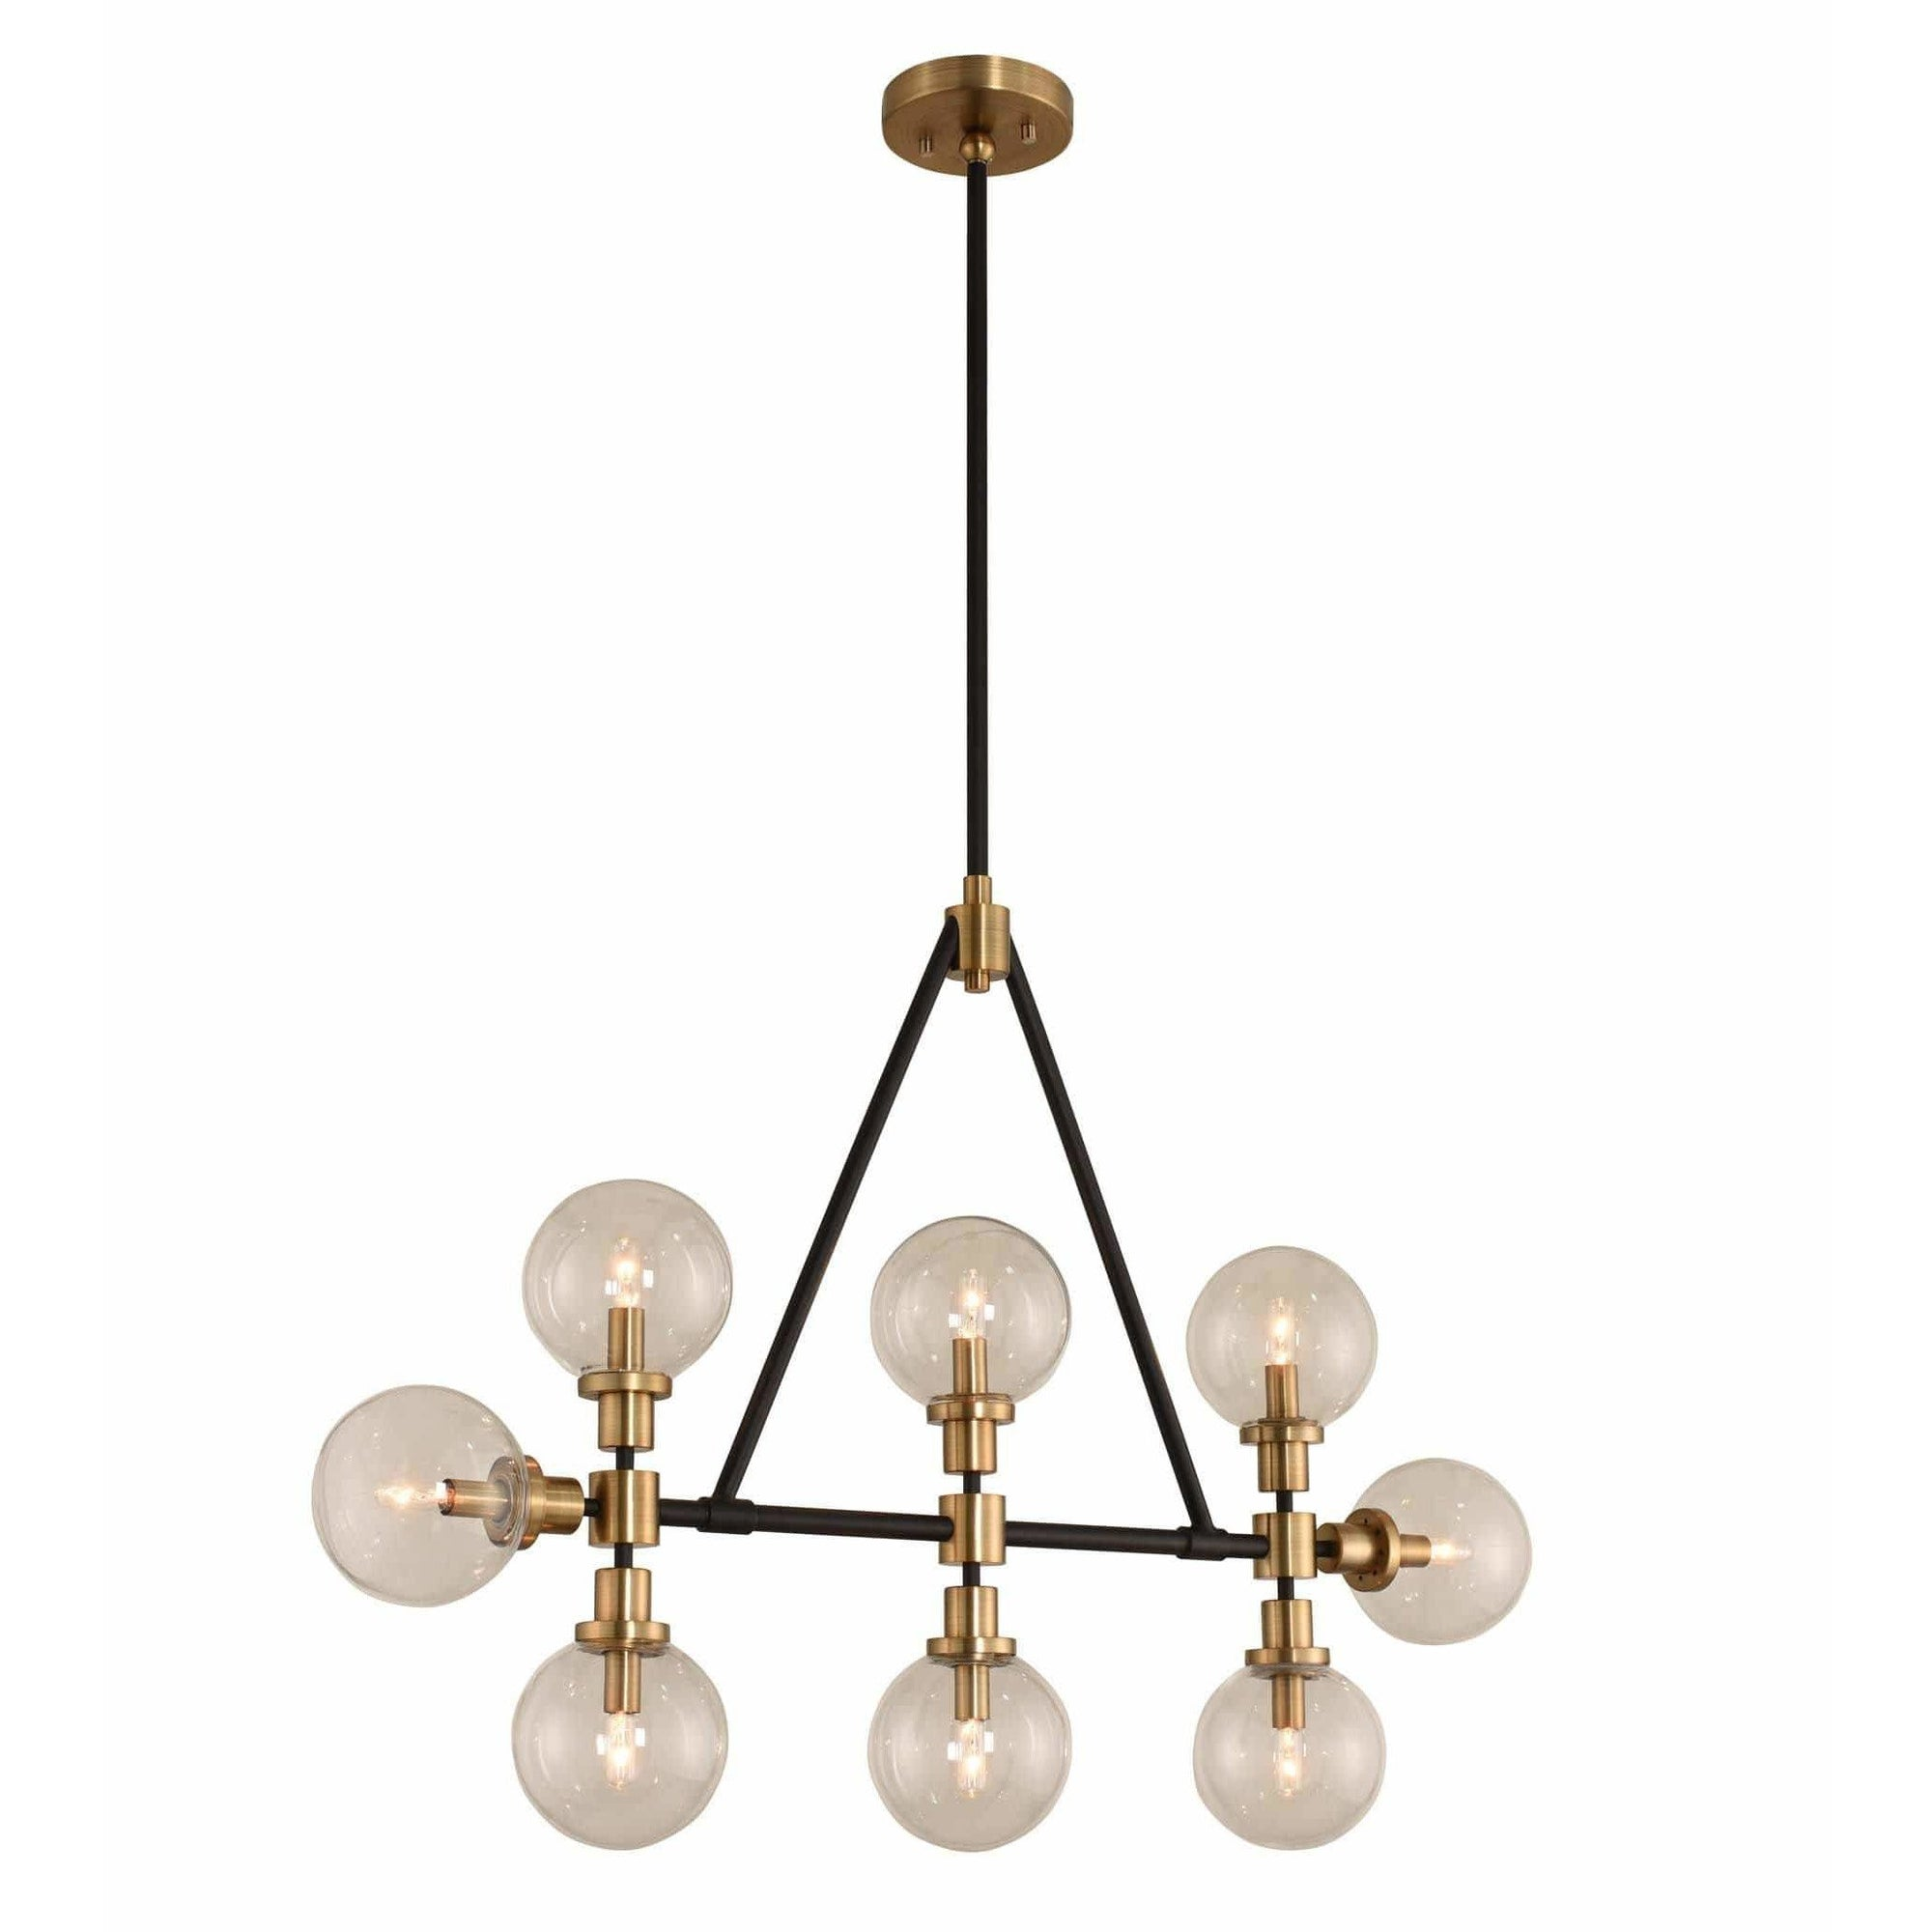 Kalco Lighting Island Lighting Matte Black Finish with Brushed Pearlized Brass Cameo 8 Light Island By Kalco Lighting 315453